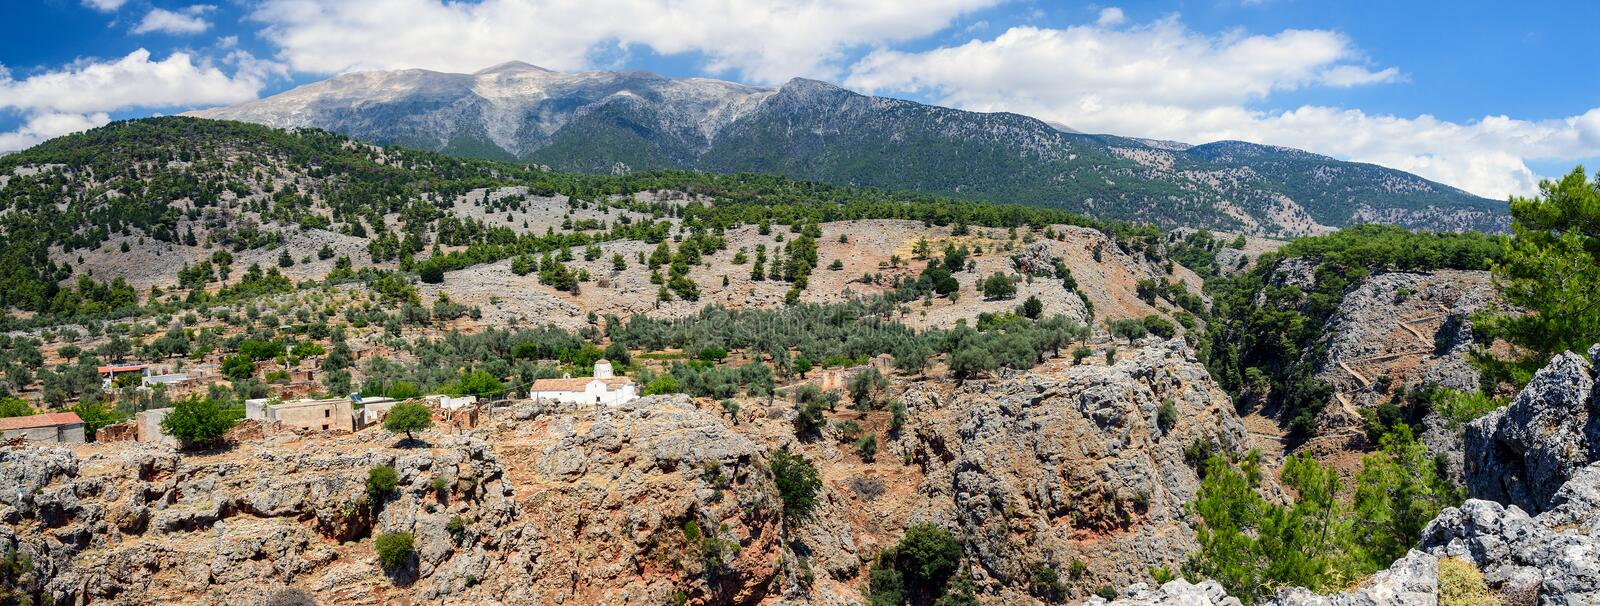 Landscape of Crete island with small white church on the rock of Aradena gorge, Crete island, Greece stock photography